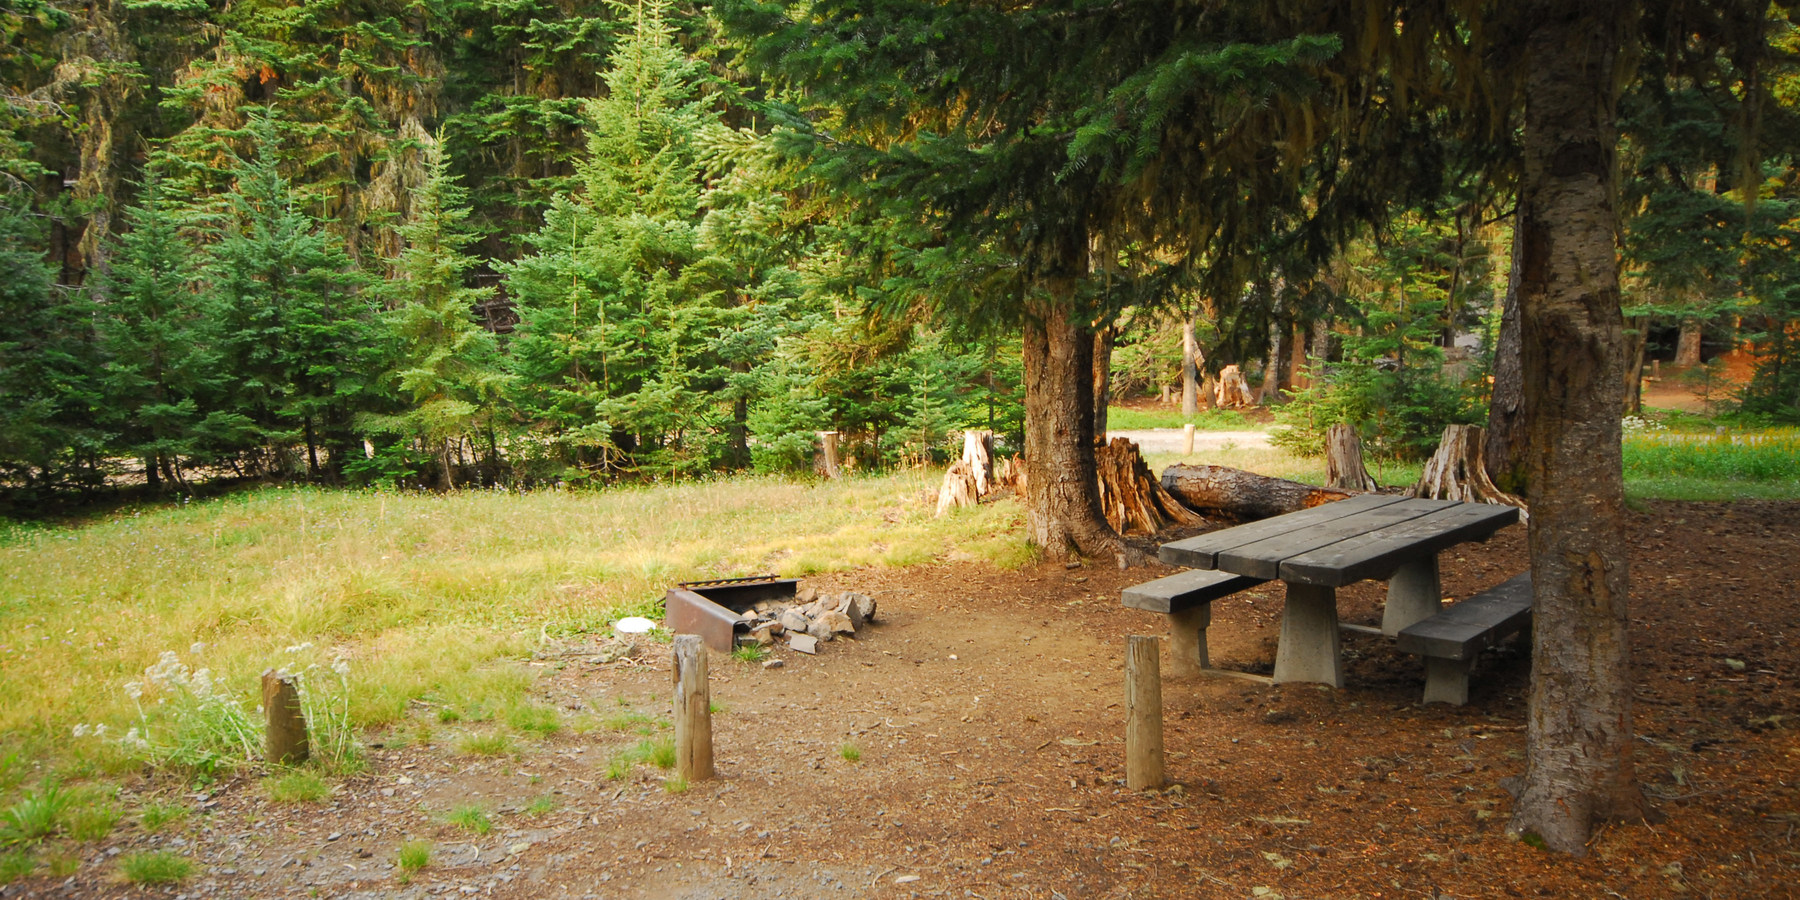 lower lake chat sites Rv parks in lower lake on ypcom see reviews, photos, directions, phone numbers and more for the best campgrounds & recreational vehicle parks in lower lake, ca.